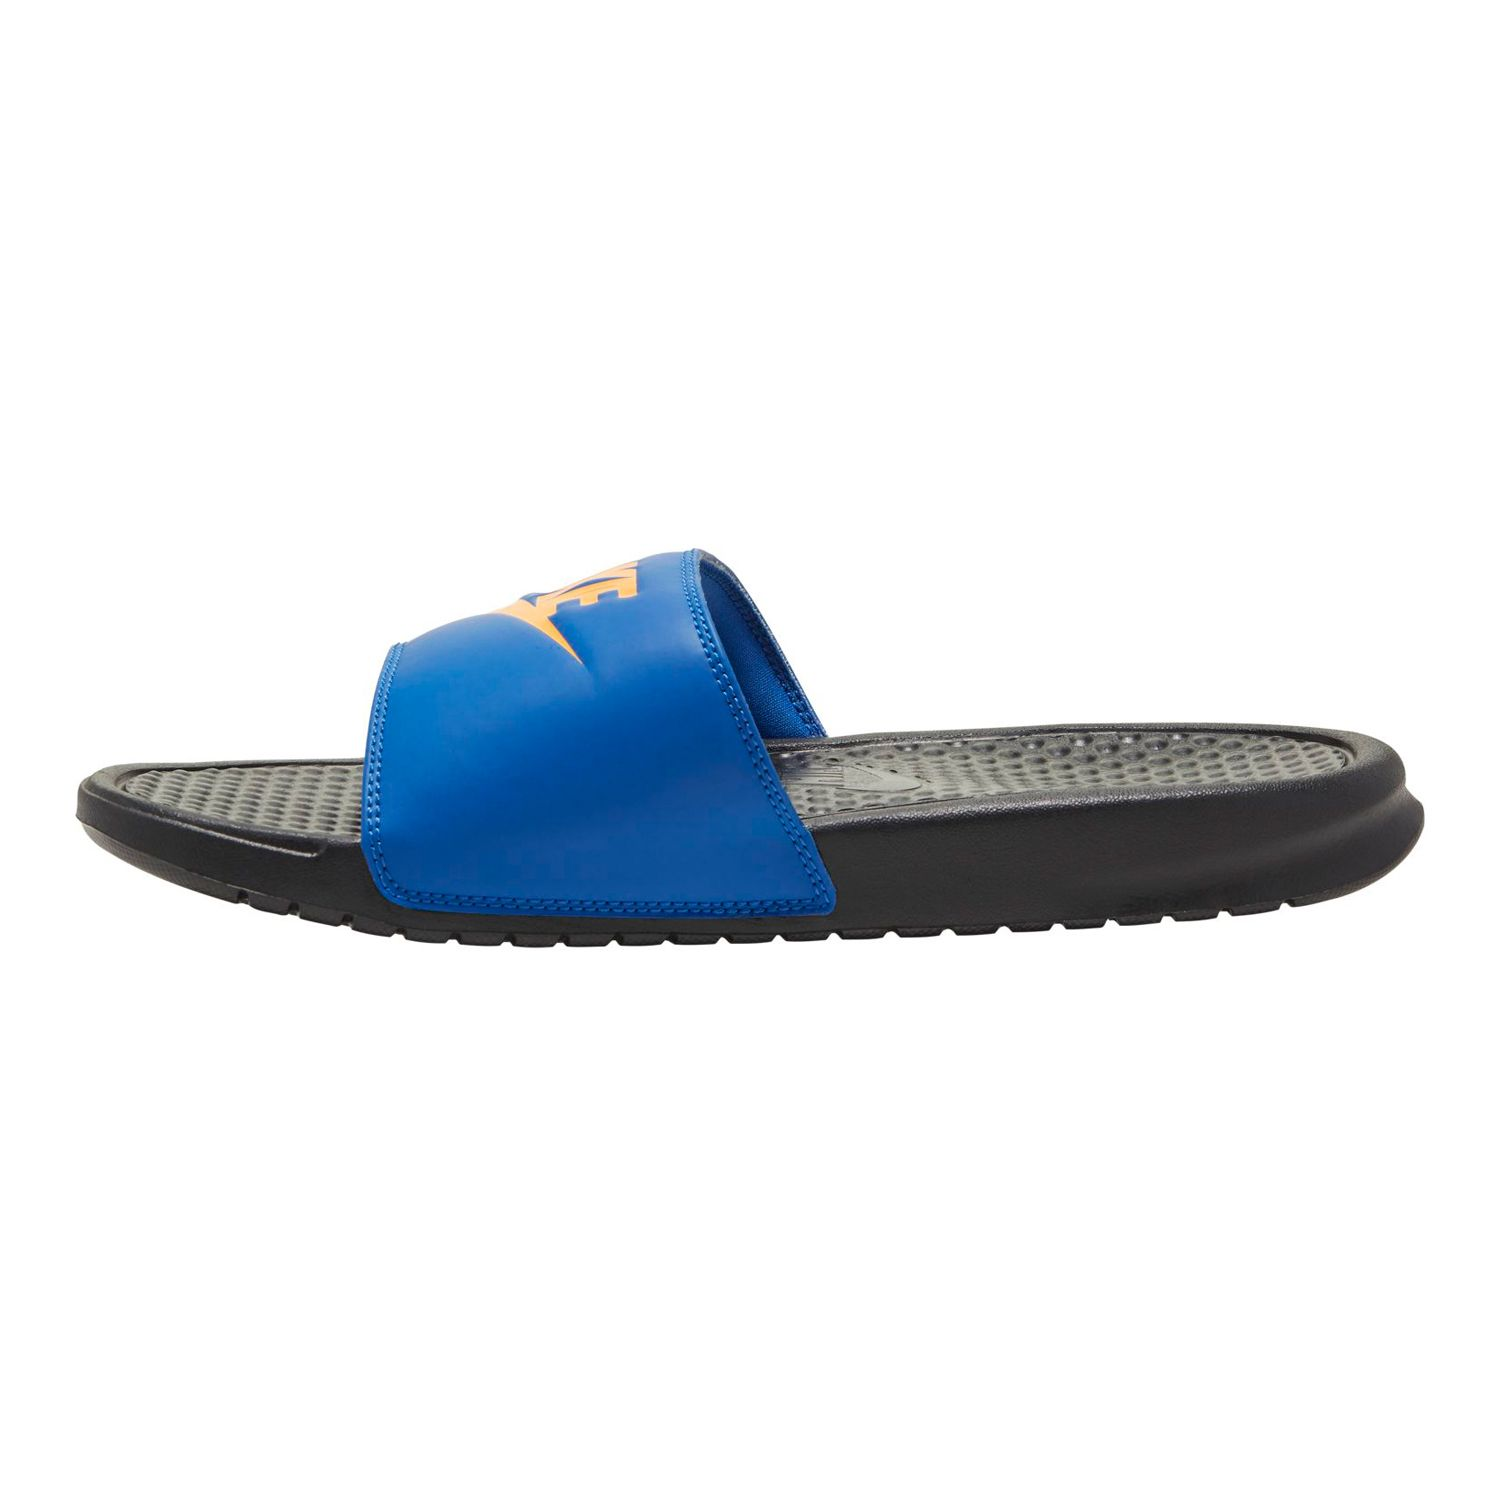 3ae43fd95f5c Nike Sandals for Men